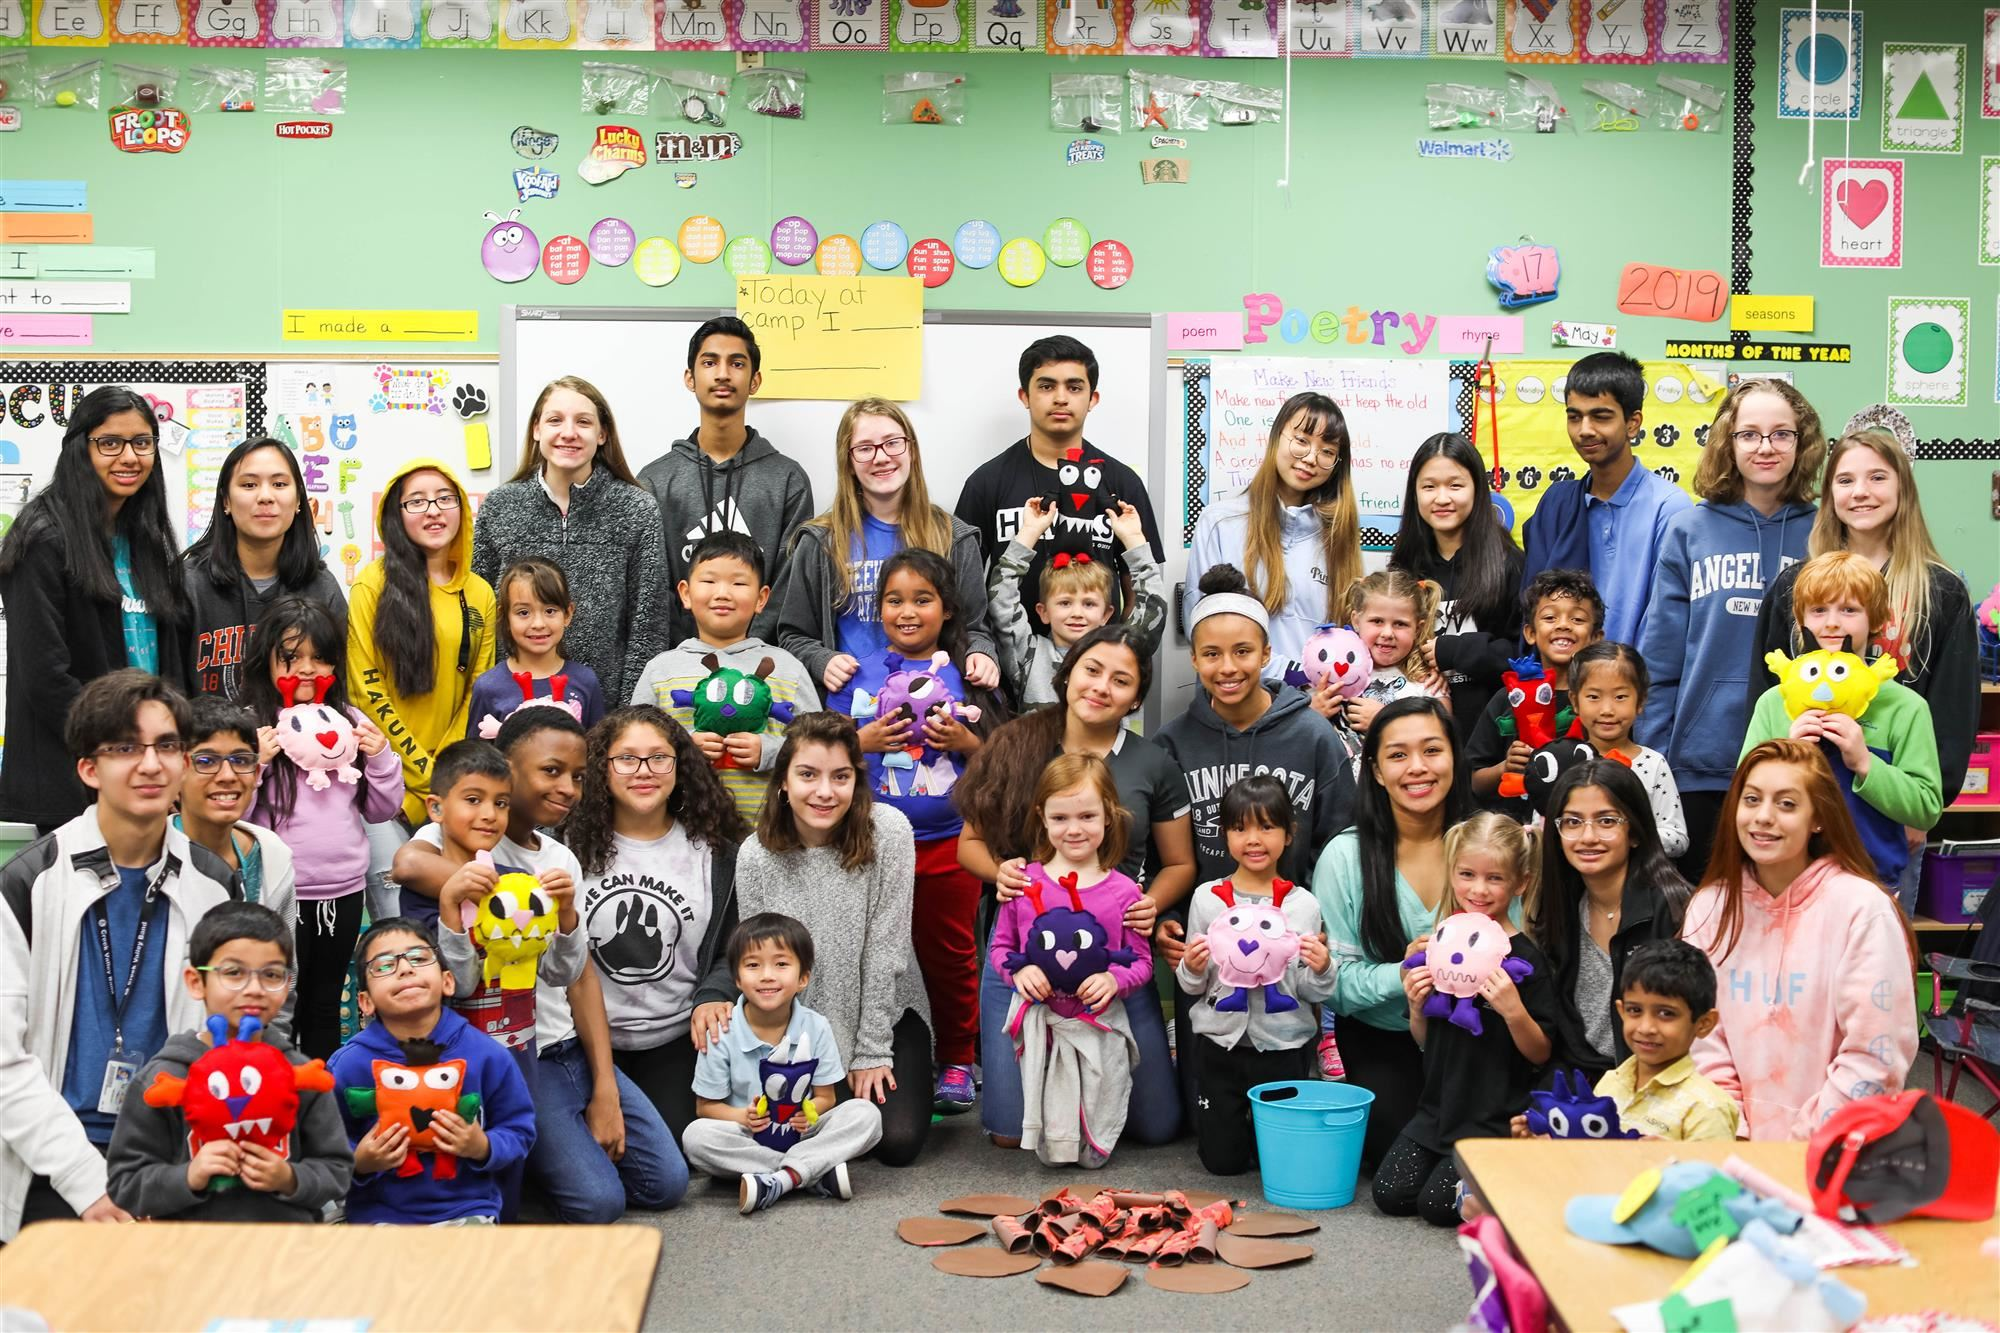 Creek Valley middle school students make stuffed monster dolls for Hebron Valley Elementary kindergartners. 2019